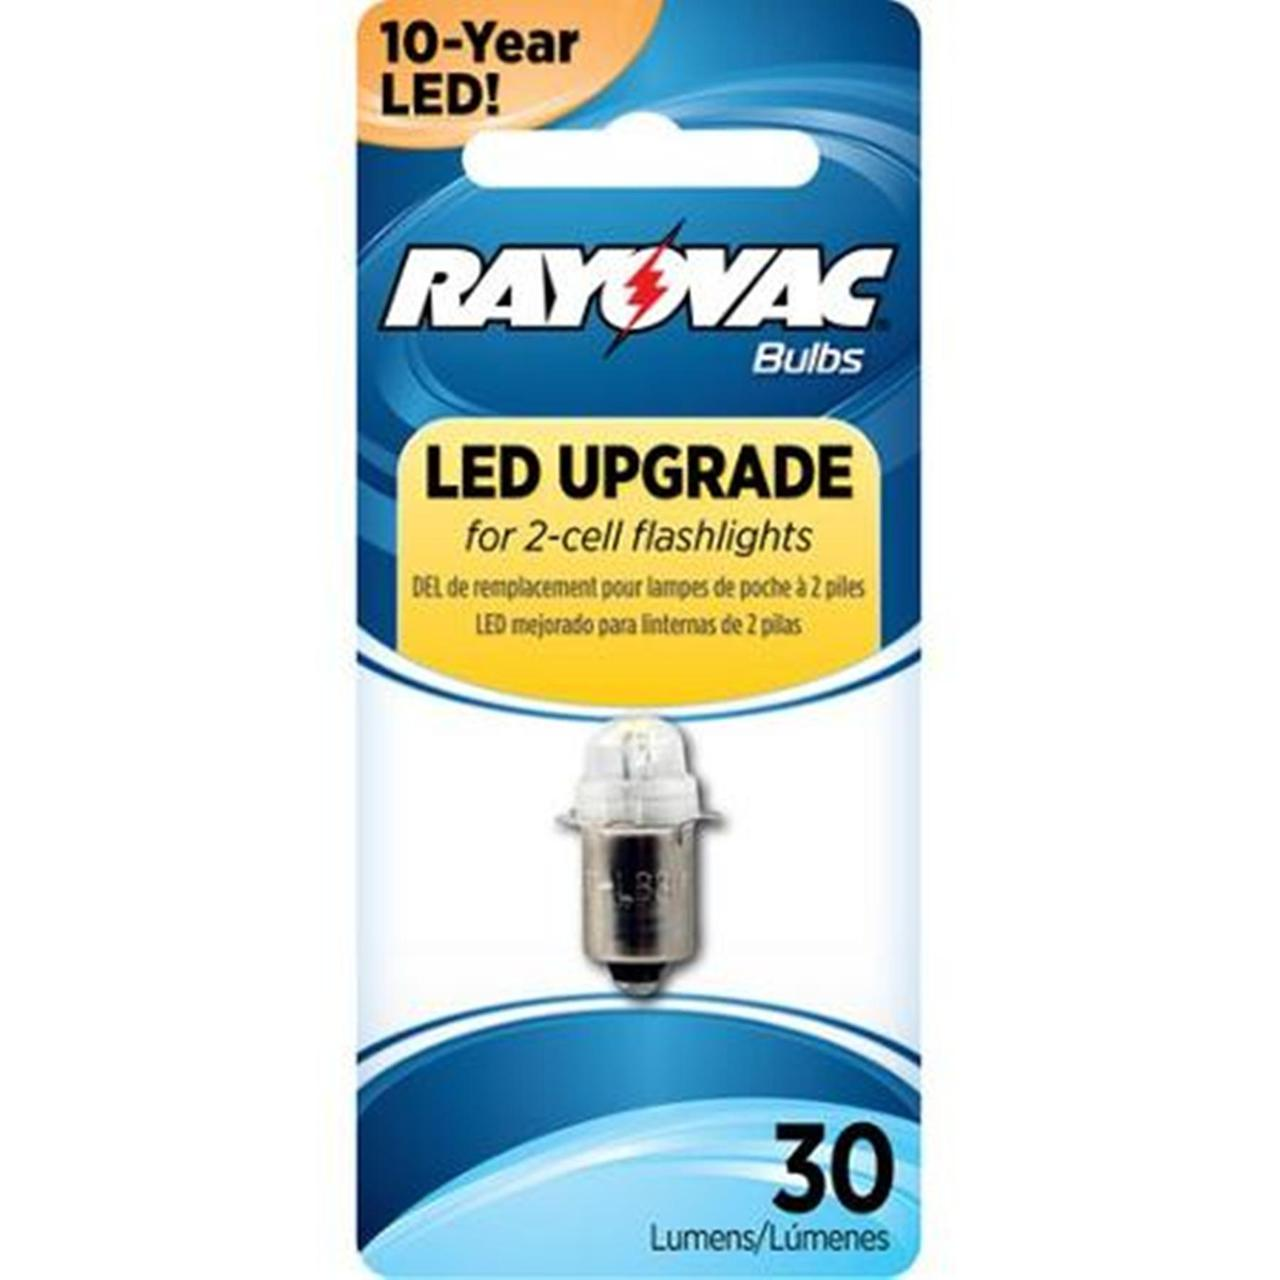 Rayovac LED Upgrade Bulb For 2-Cell Flashlights 3VLED-1T + FREE SHIPPING!